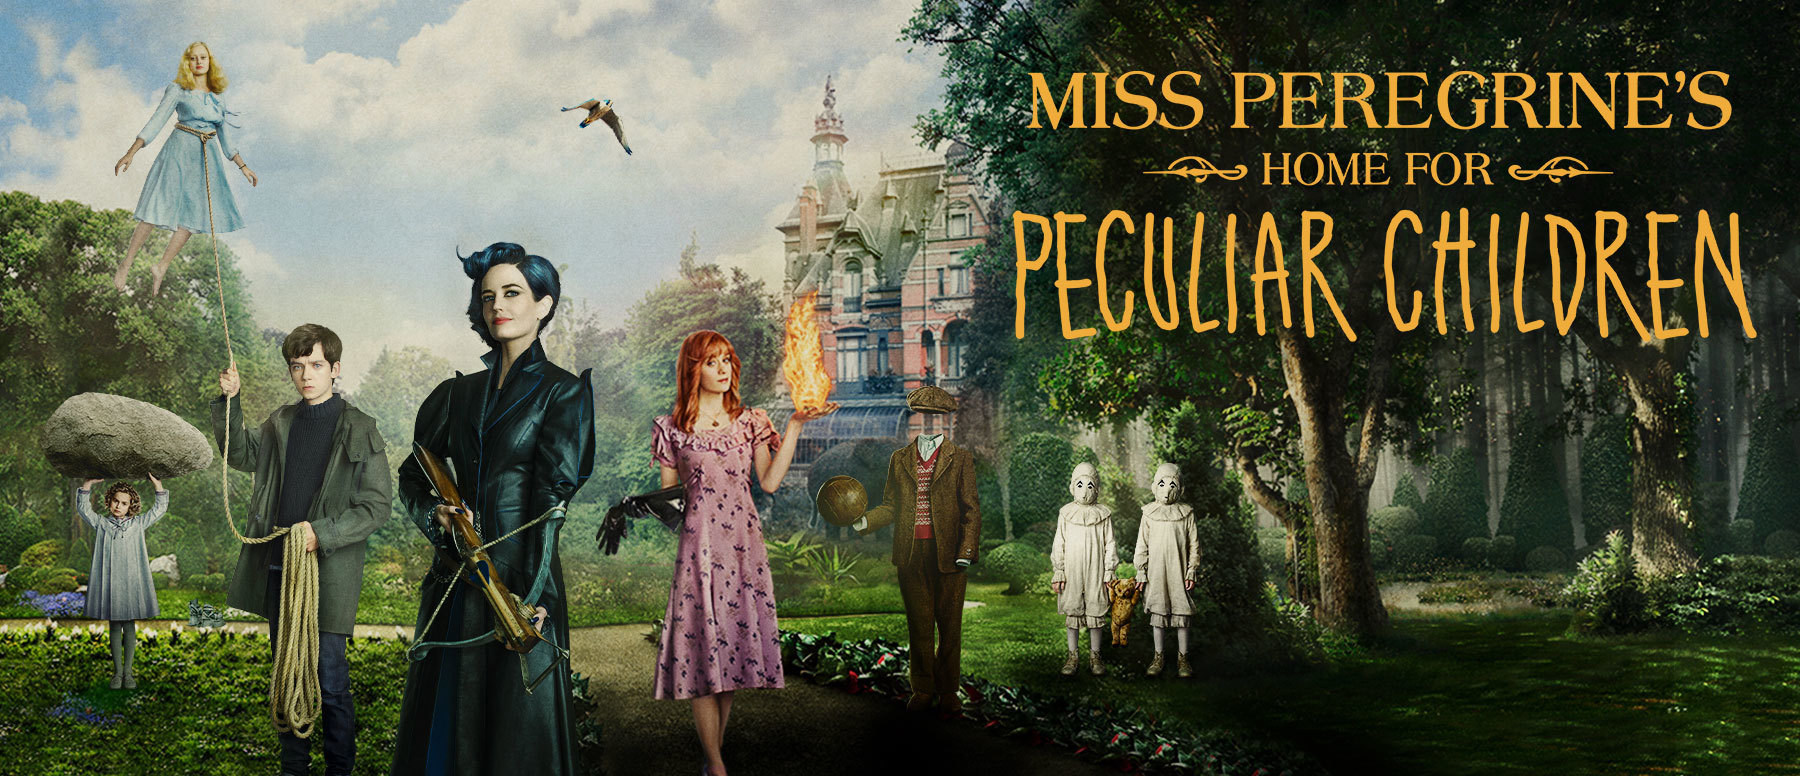 Miss Peregrine's Home for Peculiar Children Hero